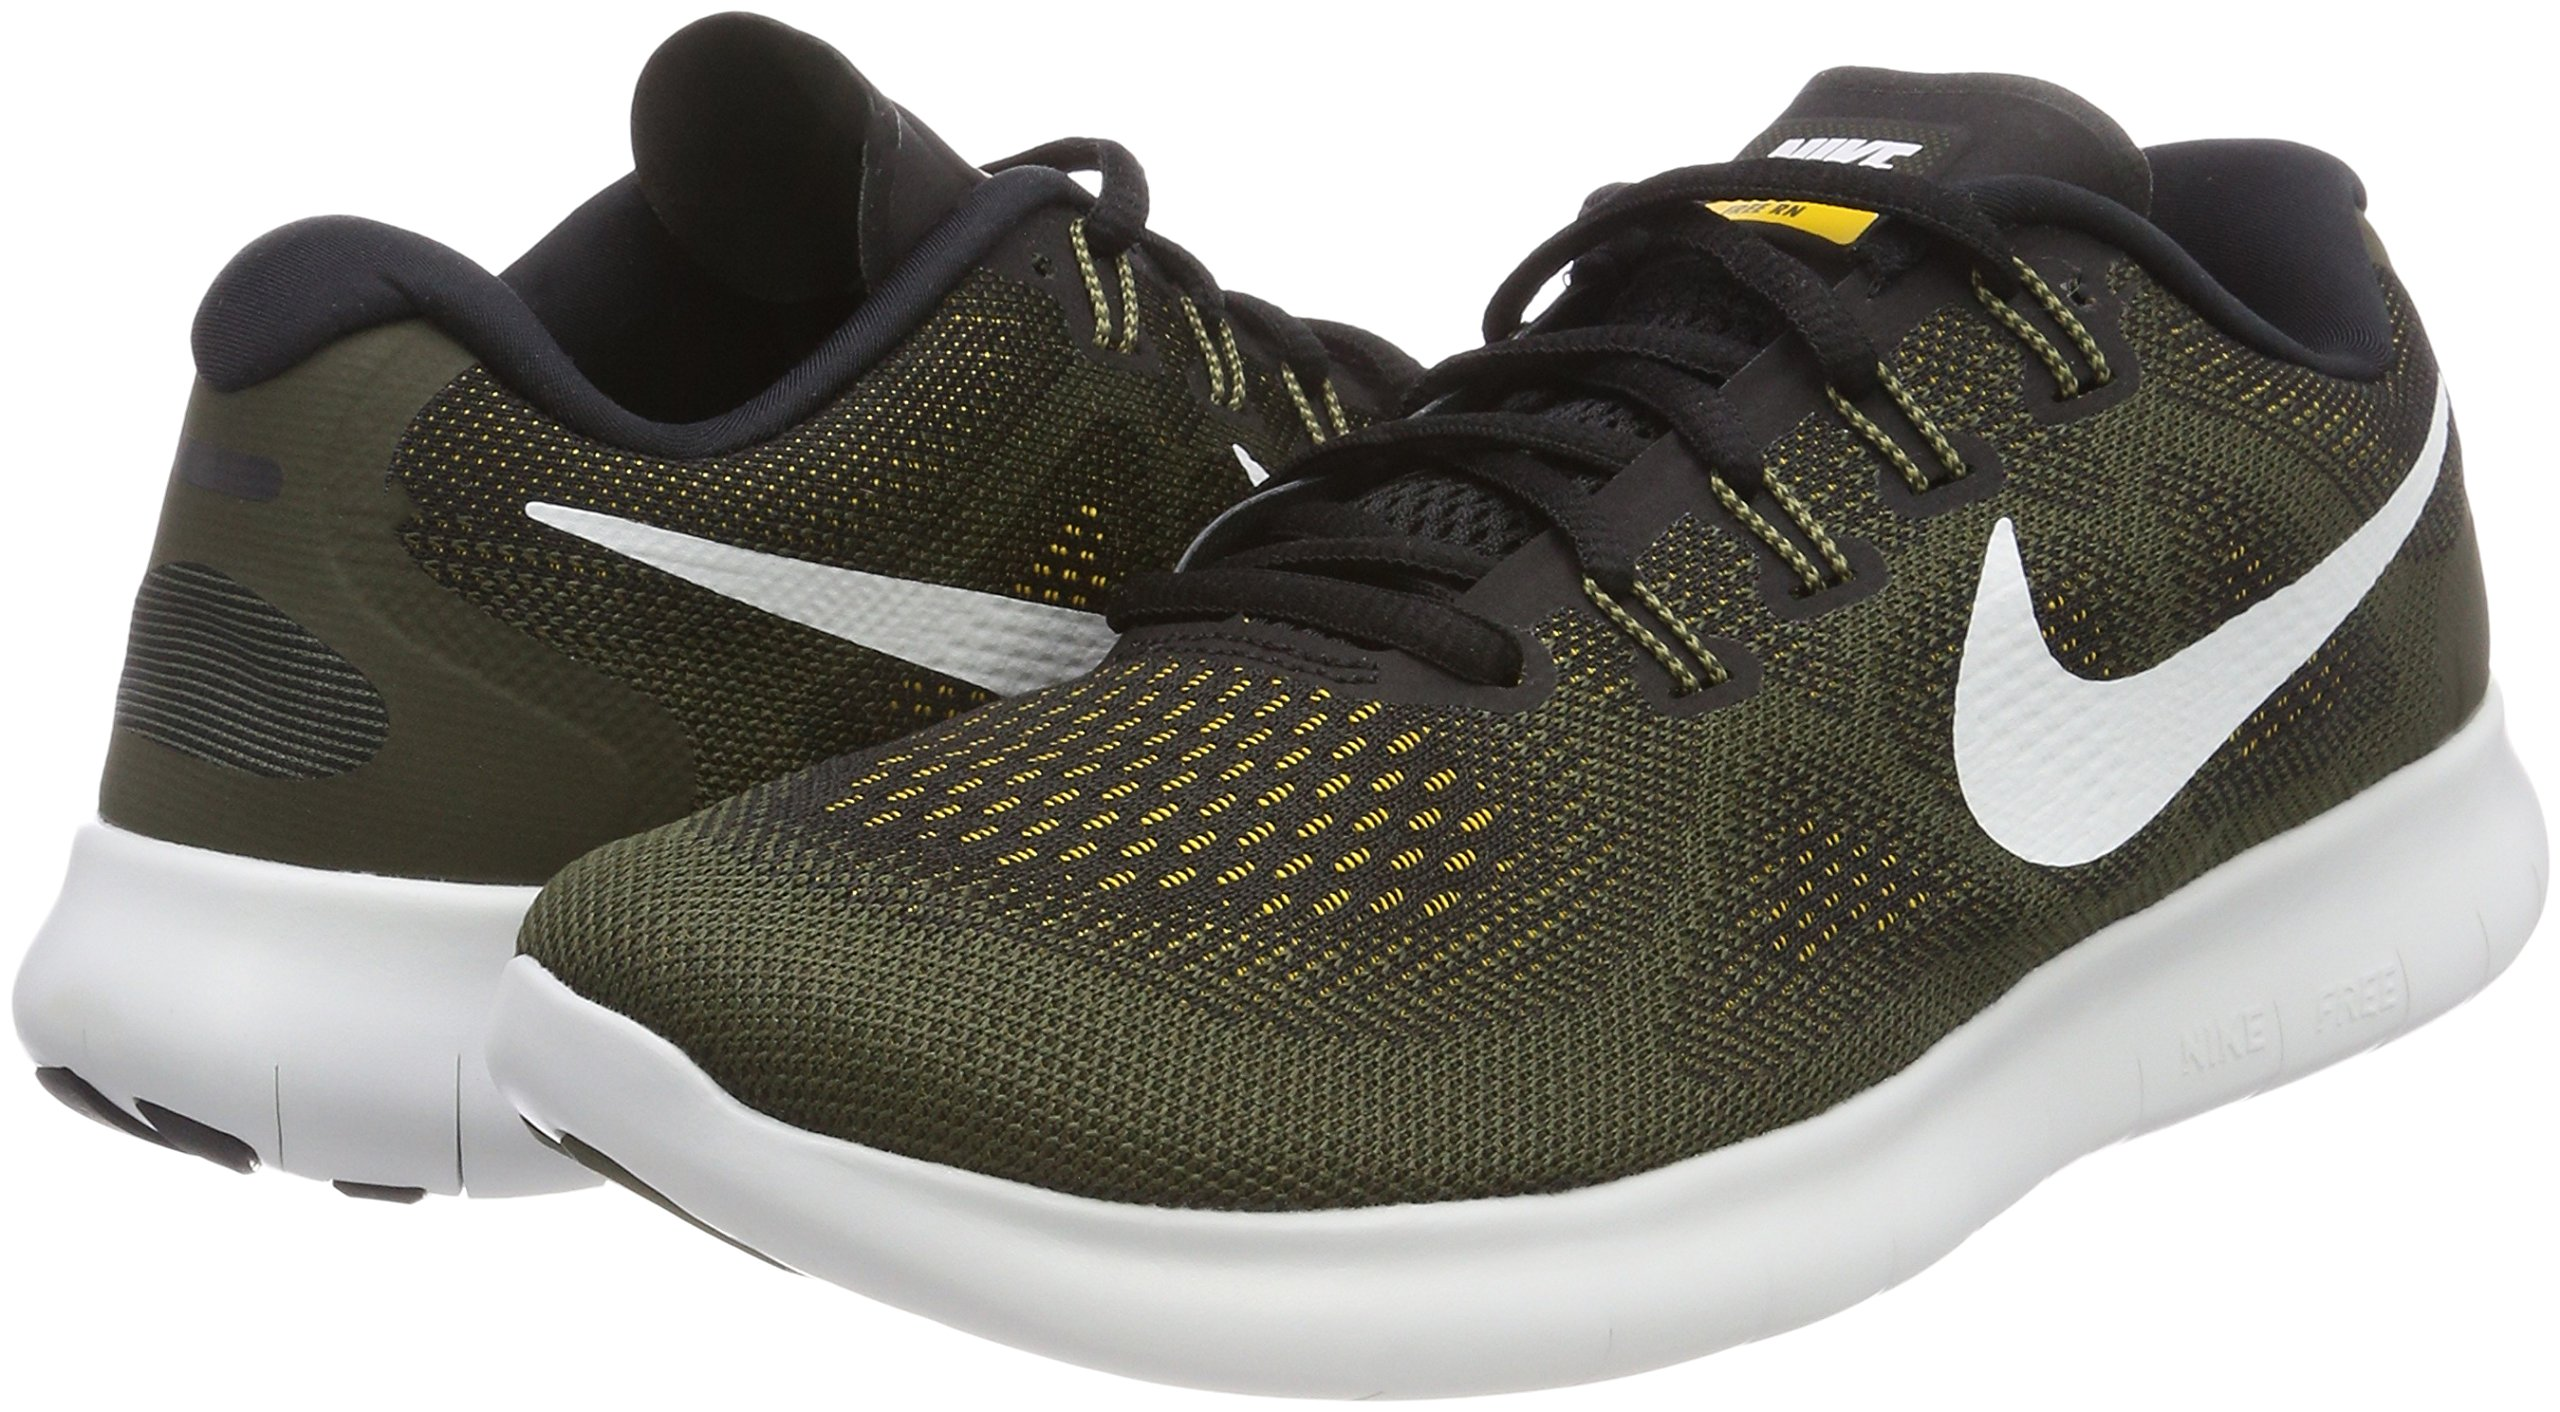 NIKE Free Rn 2017 Mens Style: 880839-008 Size: 8 by Nike (Image #5)